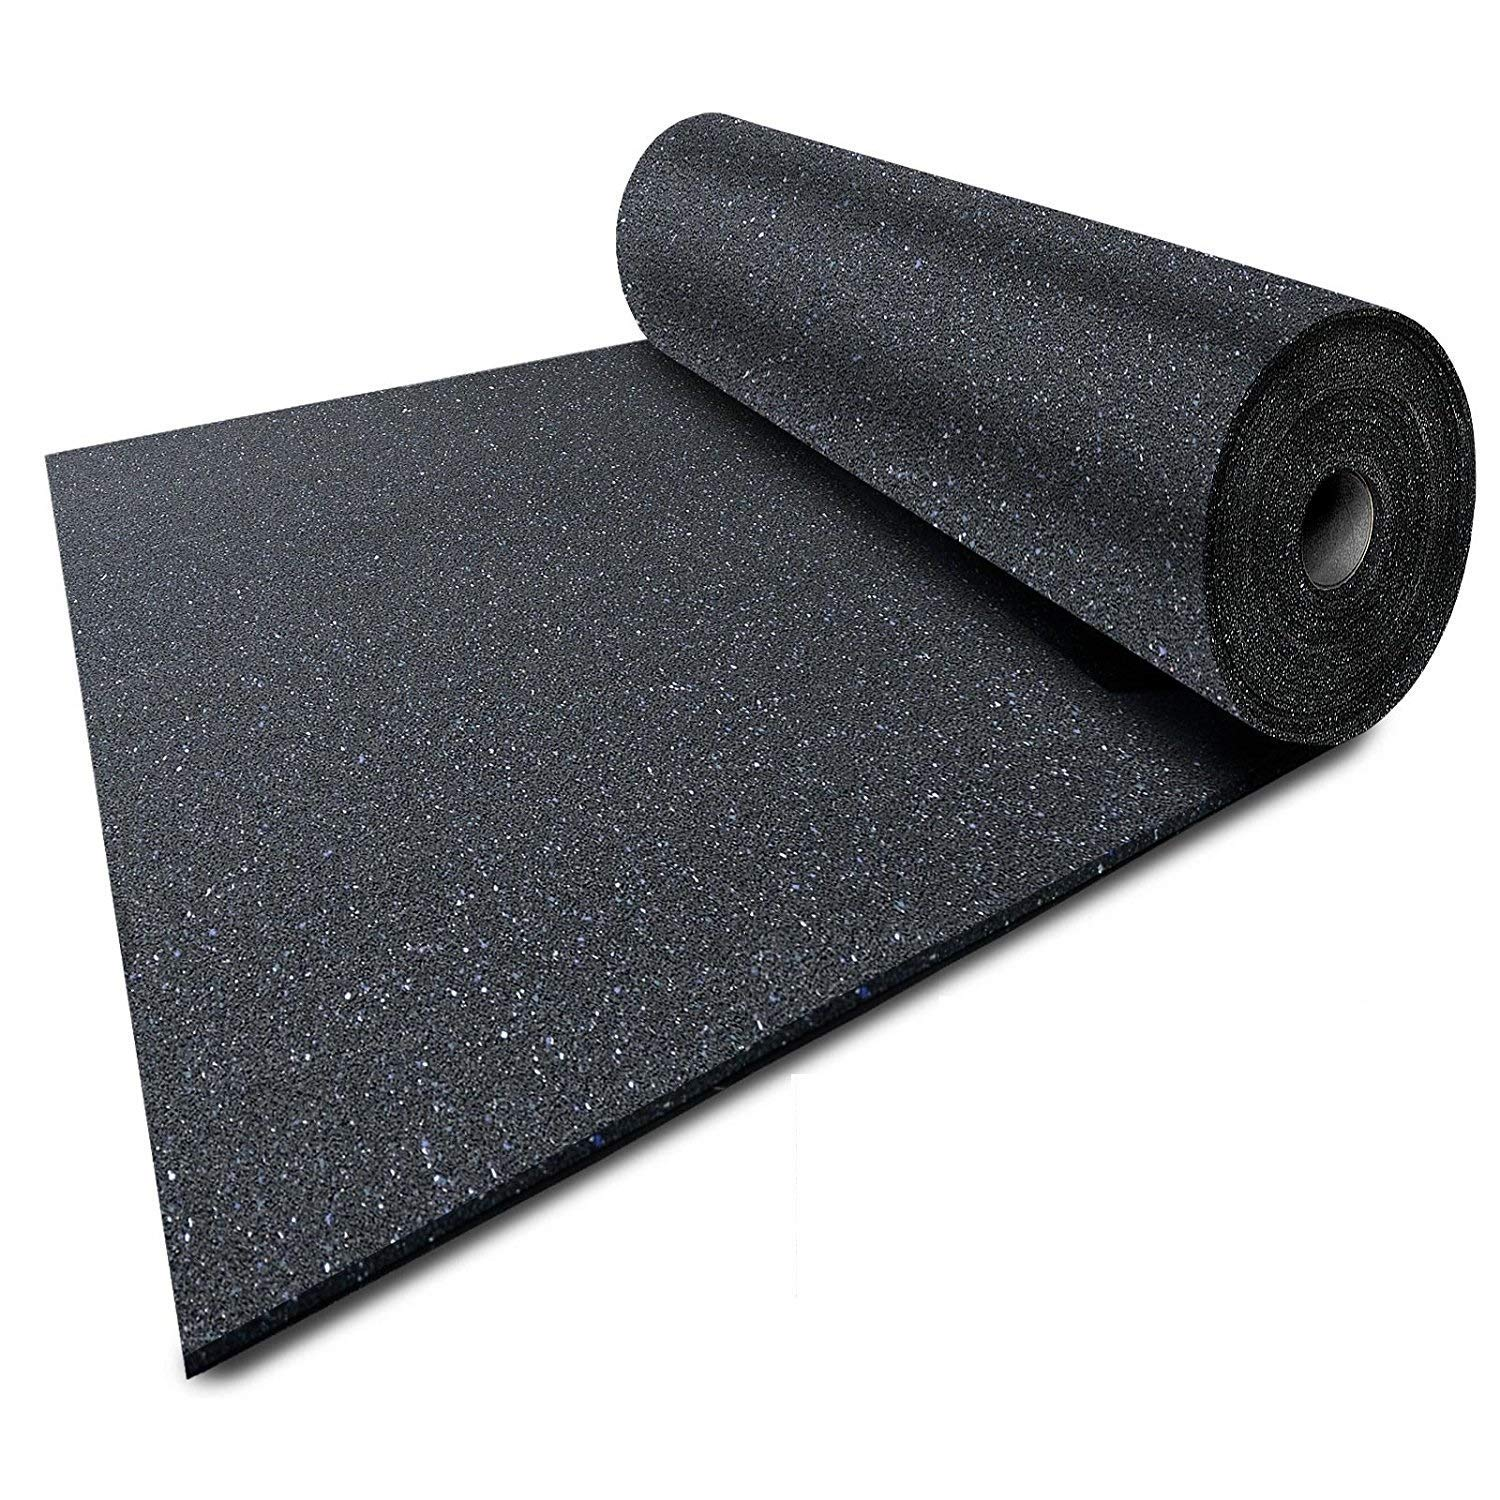 Ergocell Recycled Rubber Floor Mat – Shock Absorbent Gym Mat Flooring & Horse Stall Mat | Three Thicknesses, Multiple Sizes | 3/8'' - 2' x 7' by Ergocell (Image #3)